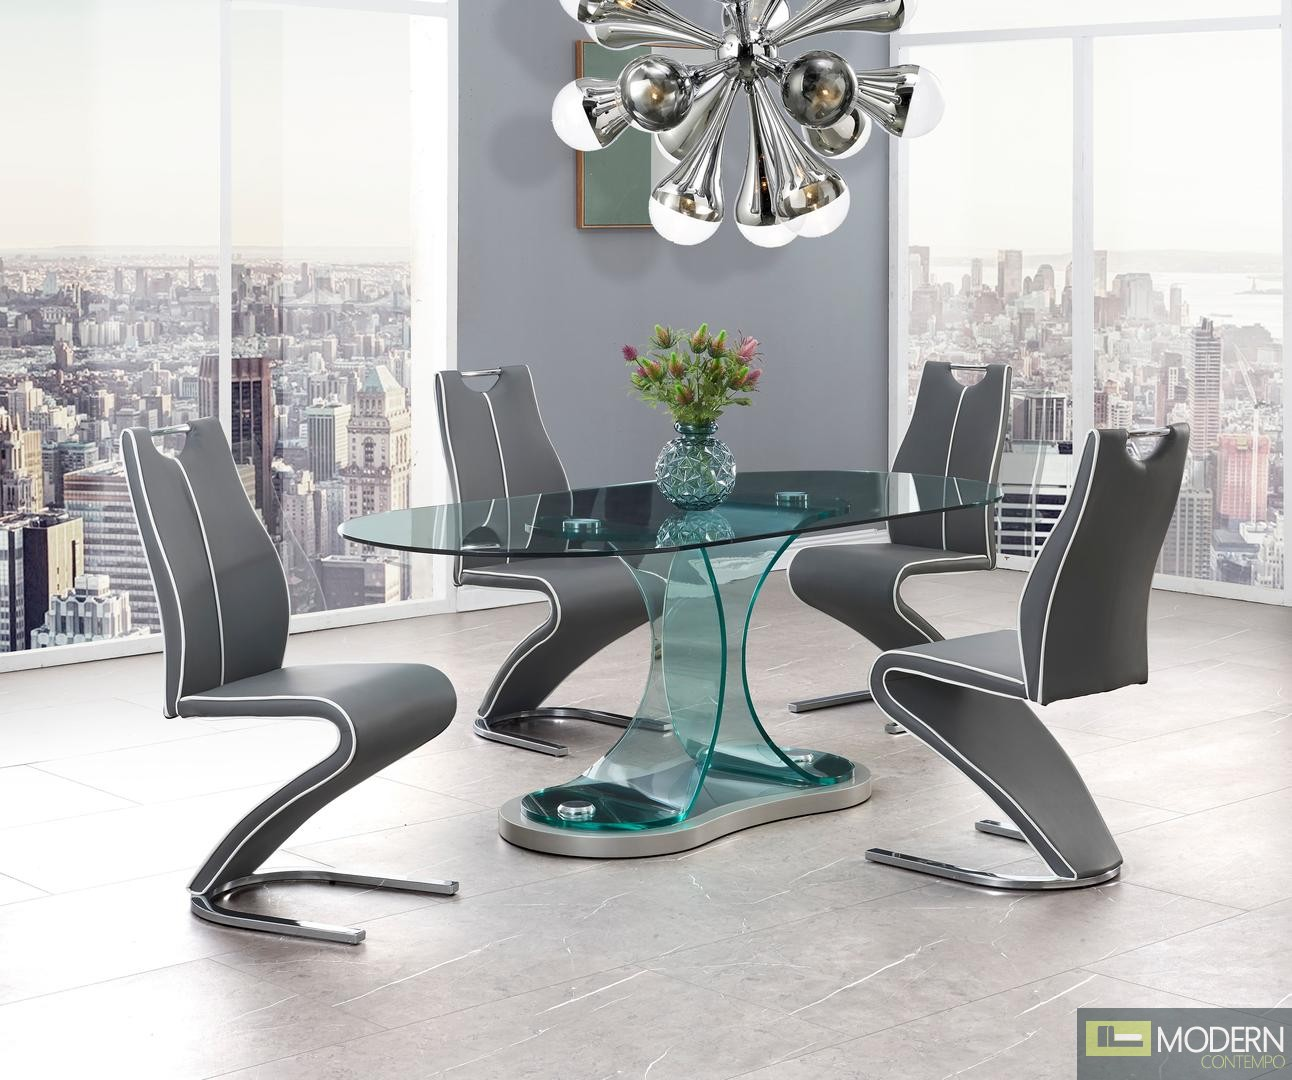 5Pc set  Zeus Modern Bent Glass Oval Dining Table and Grey leatherette chairs